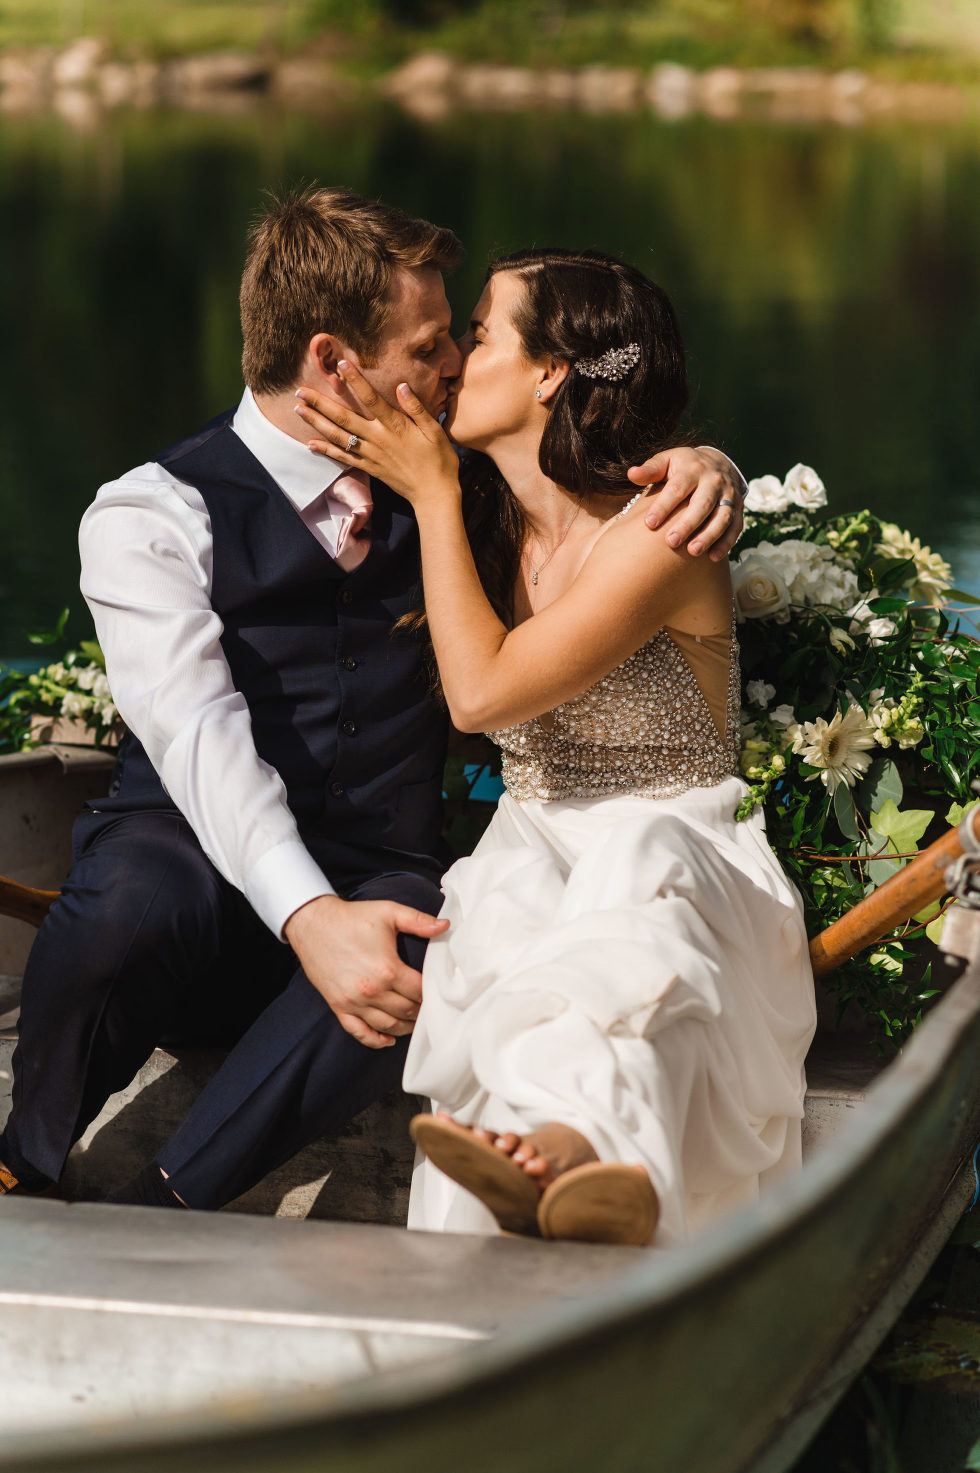 bride and groom kissing while sitting in a row boat on a pond at Carvers cottage how to make your wedding special